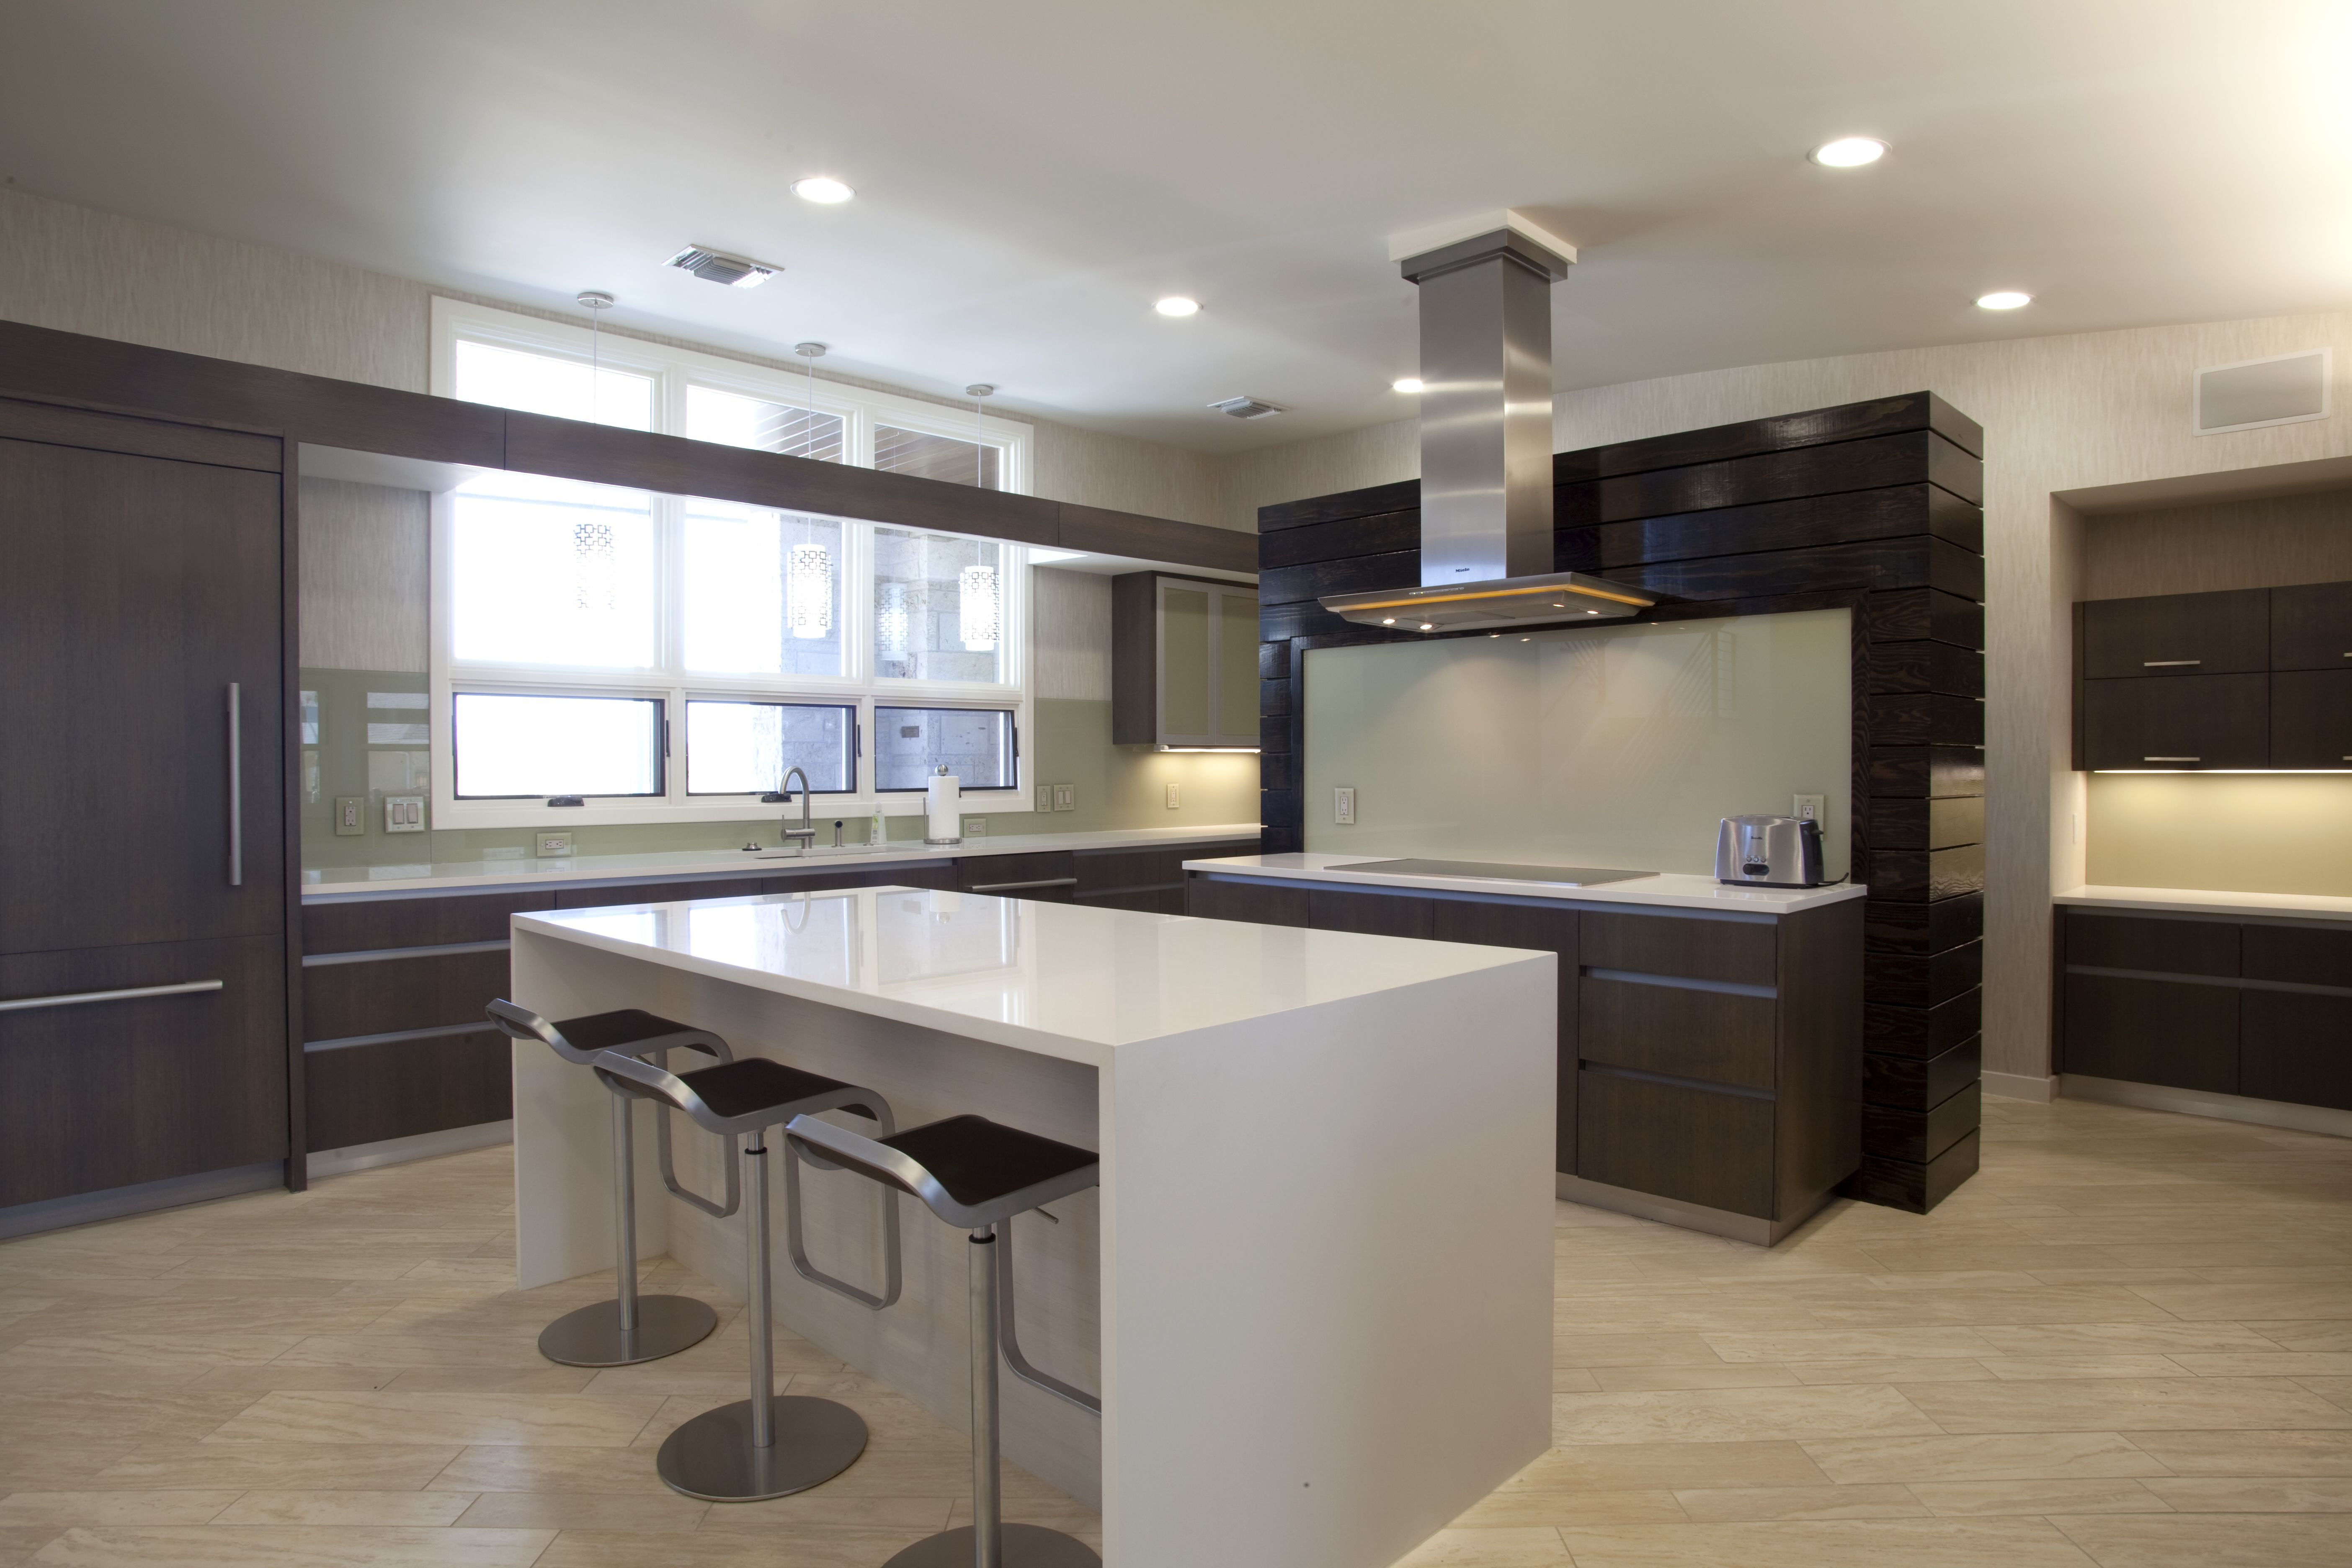 Kitchen Island With Different Countertop White Quartz Countertop In Showing The Luxurious Kitchen